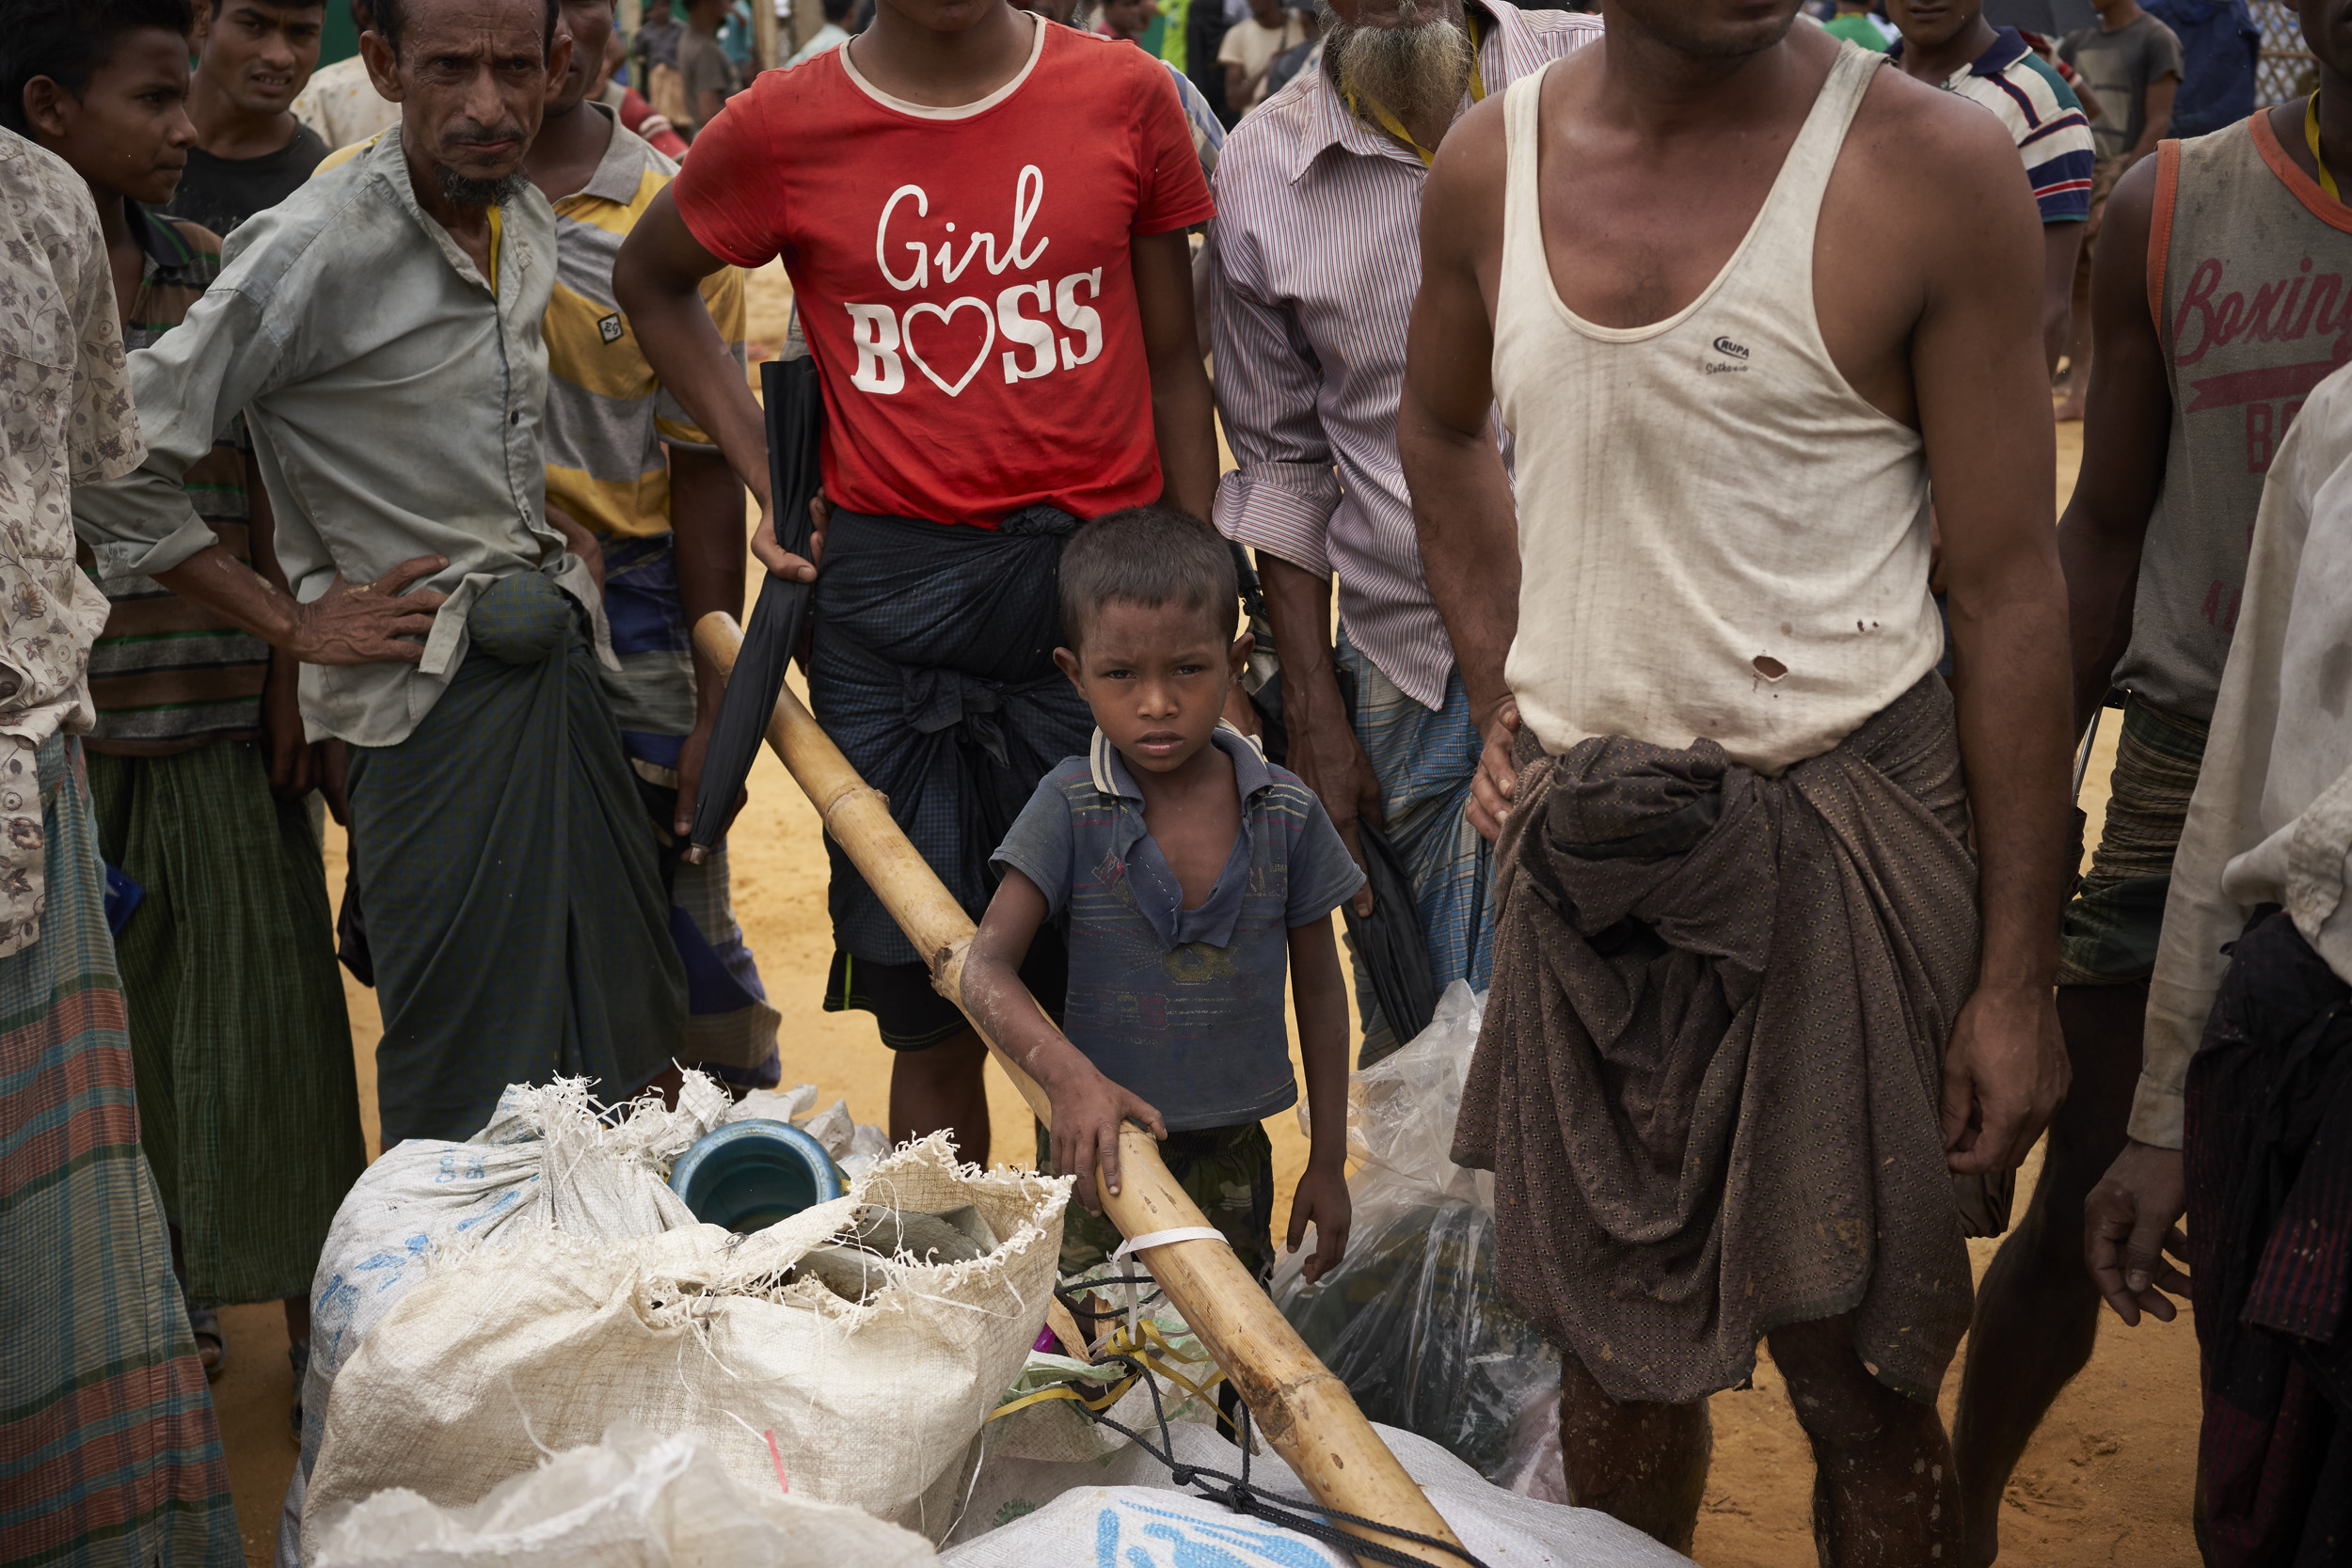 A Rohingya refugee child stands by items belonging to his family, one of 36 Rohingya refugee families, more than 150 people, being relocated from hazardous landslide and flood-prone zones to newly built shelters in an area that has been levelled, in Kutupalong Expansion Site for Rohingya refugees, Ukhia, Cox's Bazar District, Bangladesh.